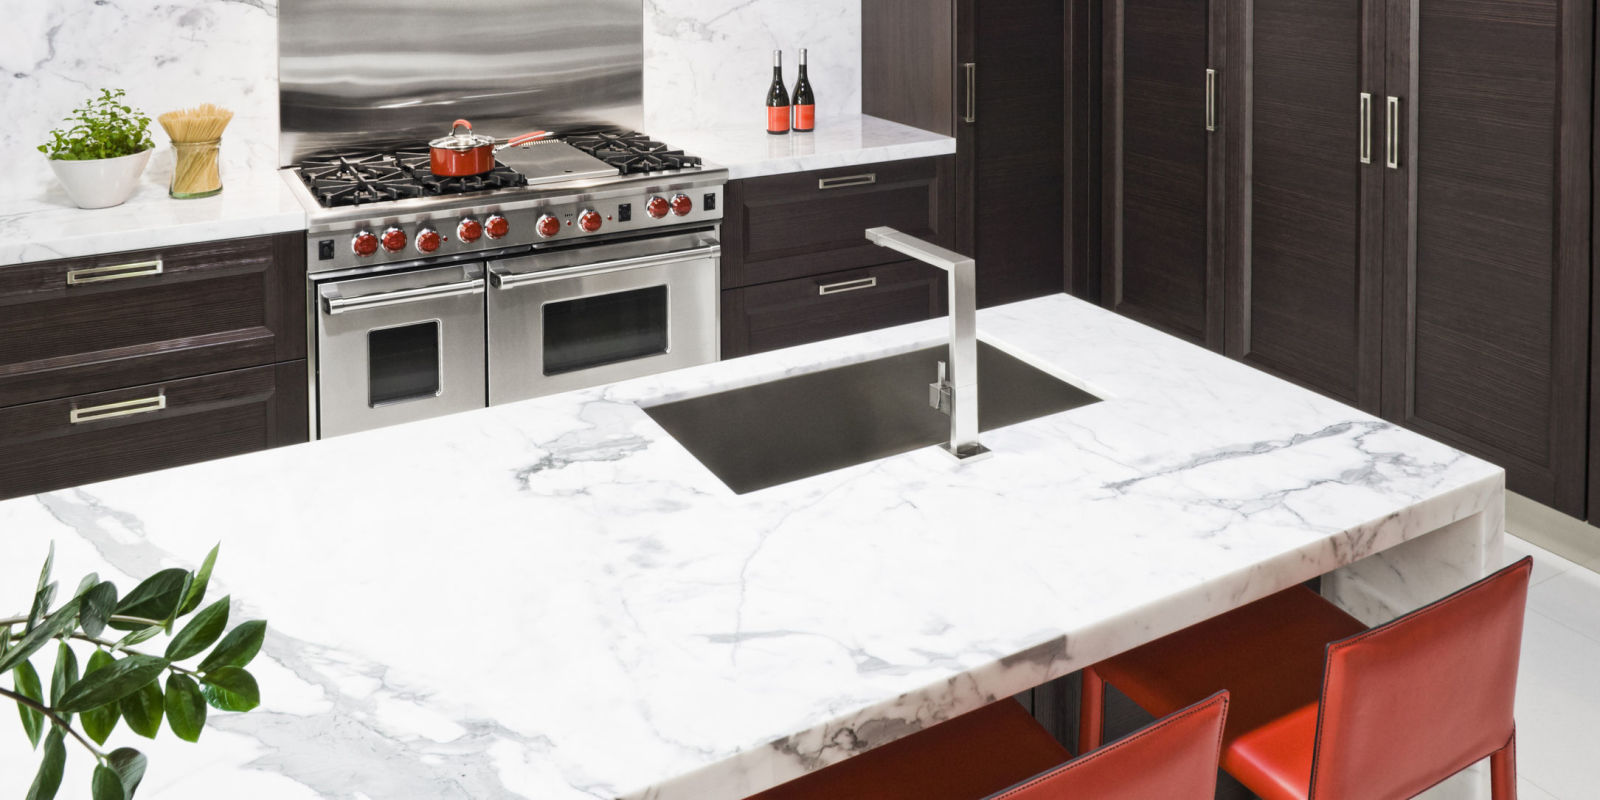 Pros And Cons Of Marble Countertops Pros And Cons Of Marble Countertops Case Against Marble